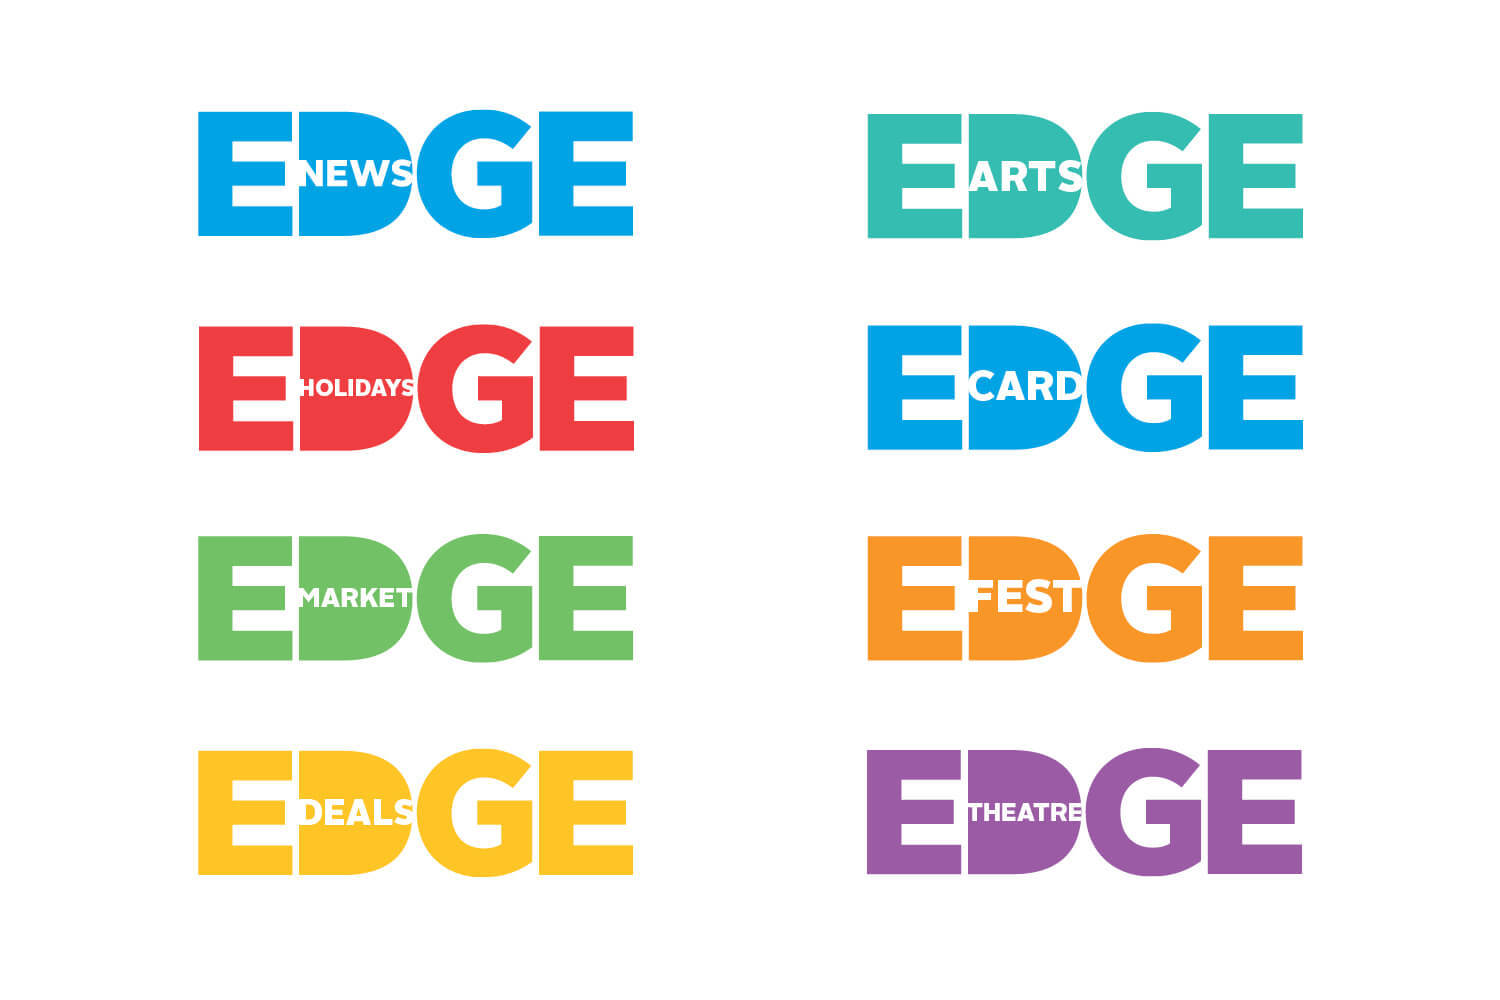 EDG-Alternate-Logos.jpg#asset:1540